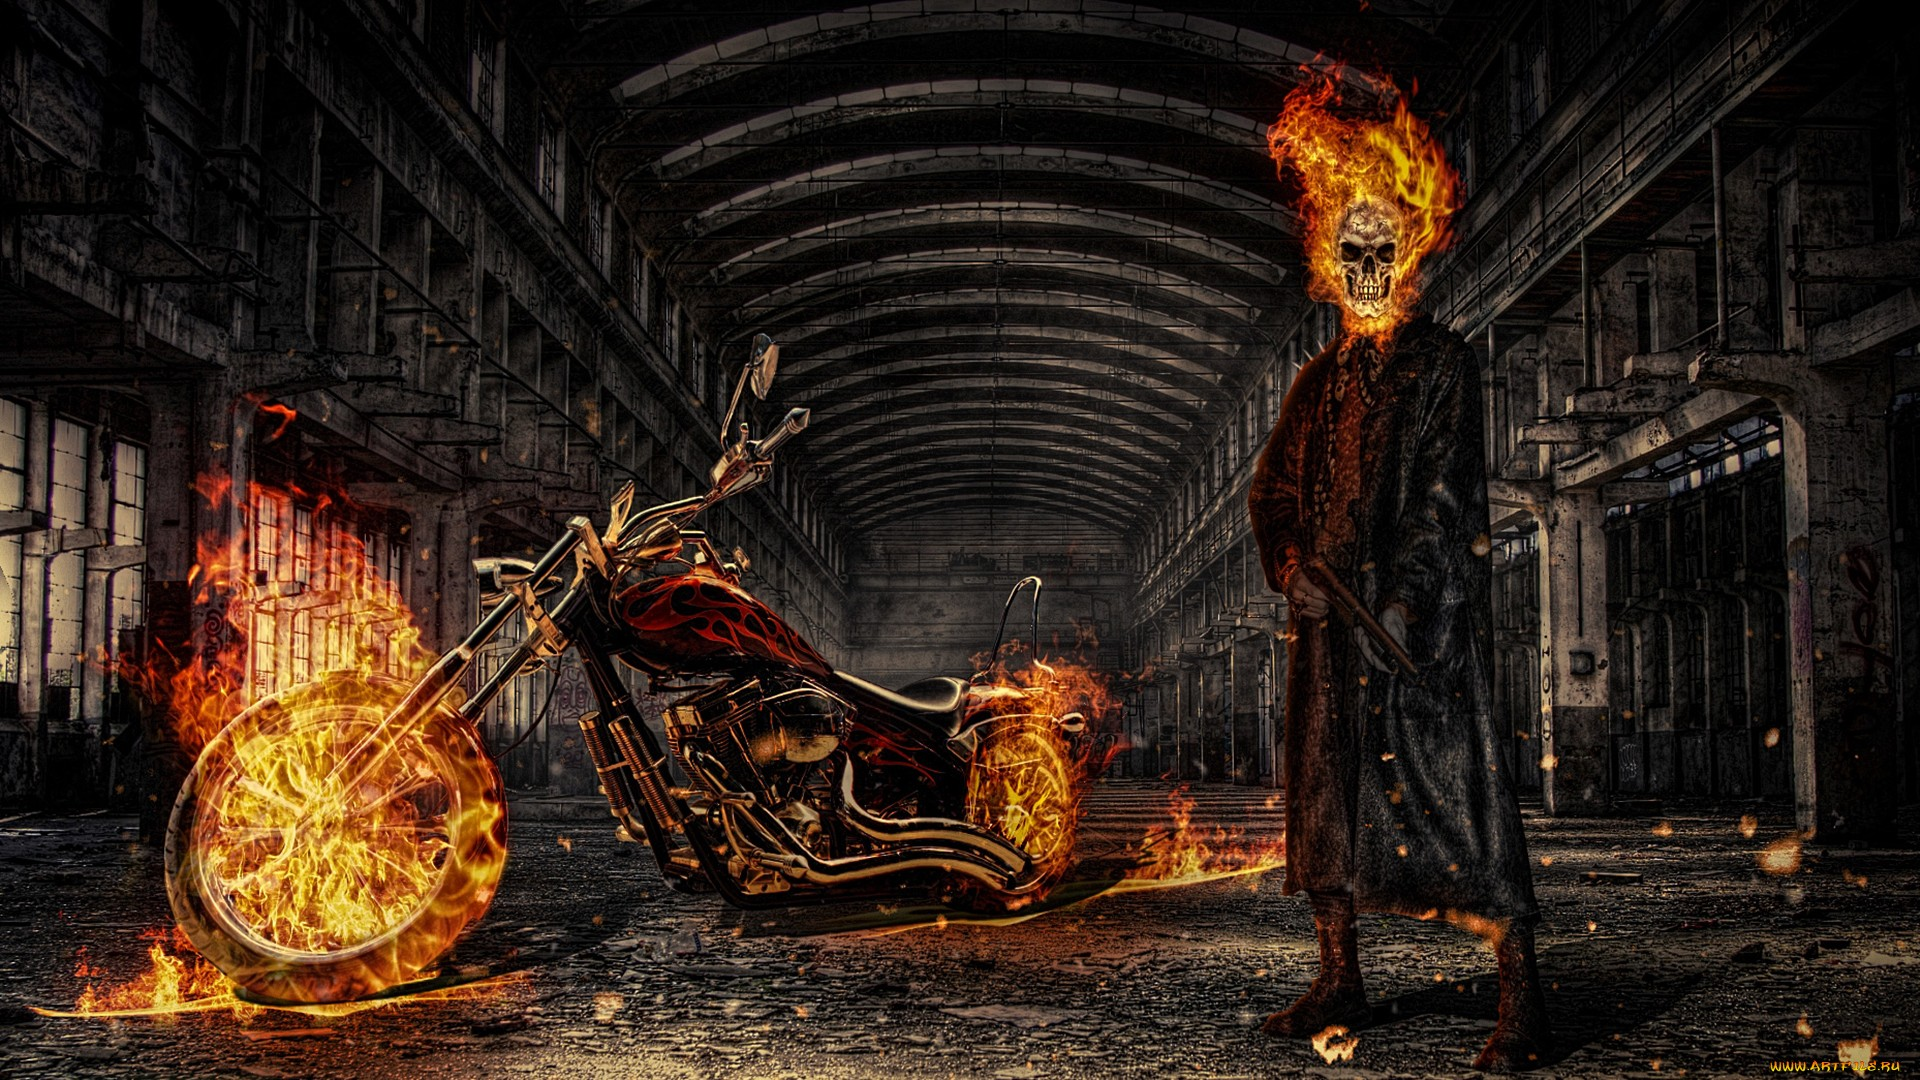 141 ghost rider hd wallpapers background images wallpaper abyss page 4. Black Bedroom Furniture Sets. Home Design Ideas